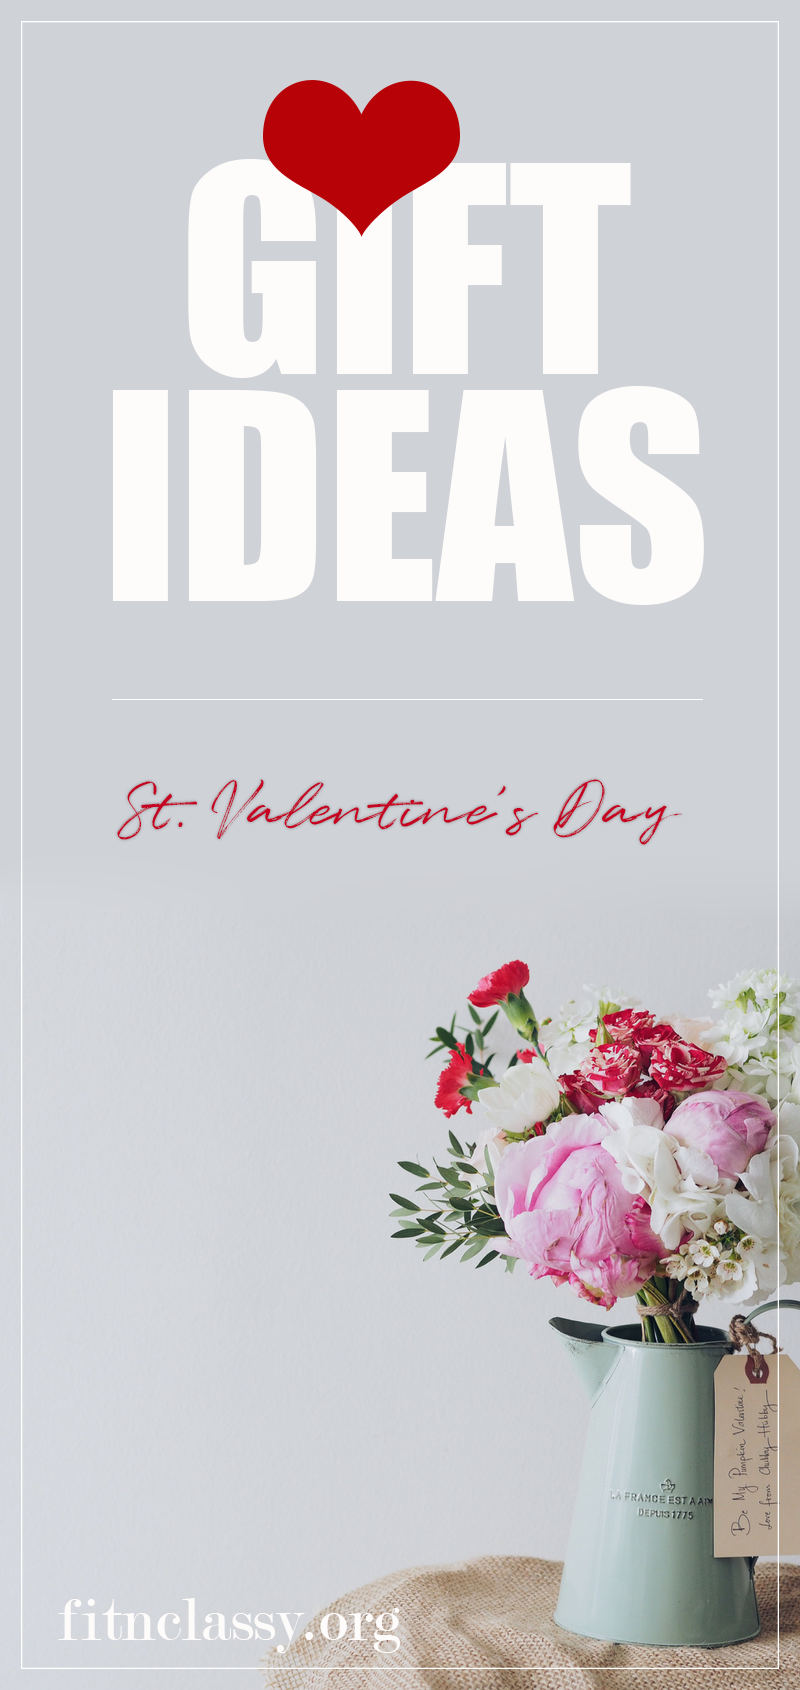 St. Valentine's Day Gift Ideas For Couples